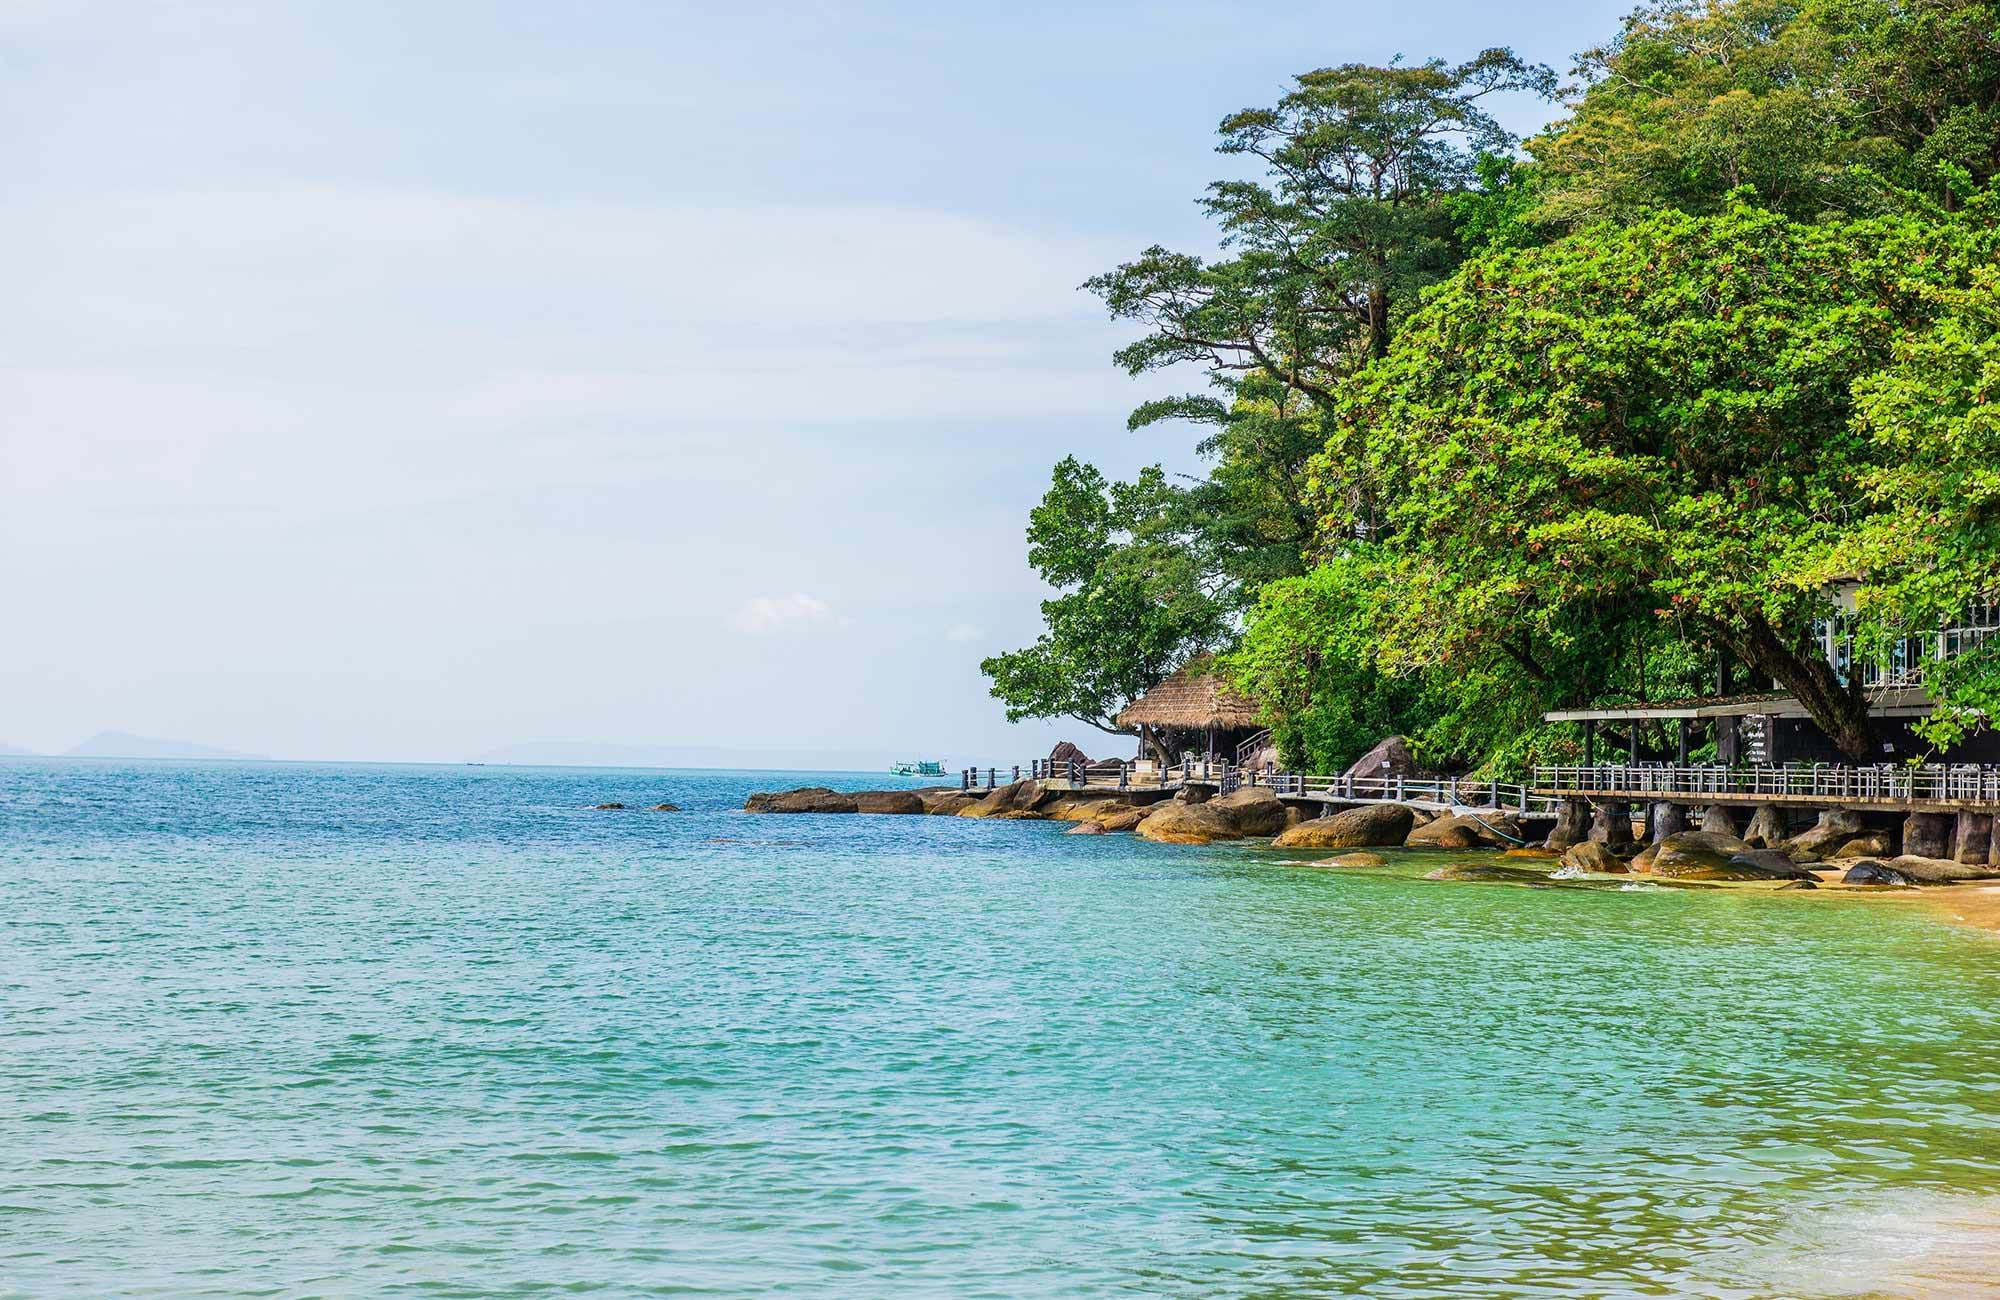 sihanoukville-cambodia-waterside-cover